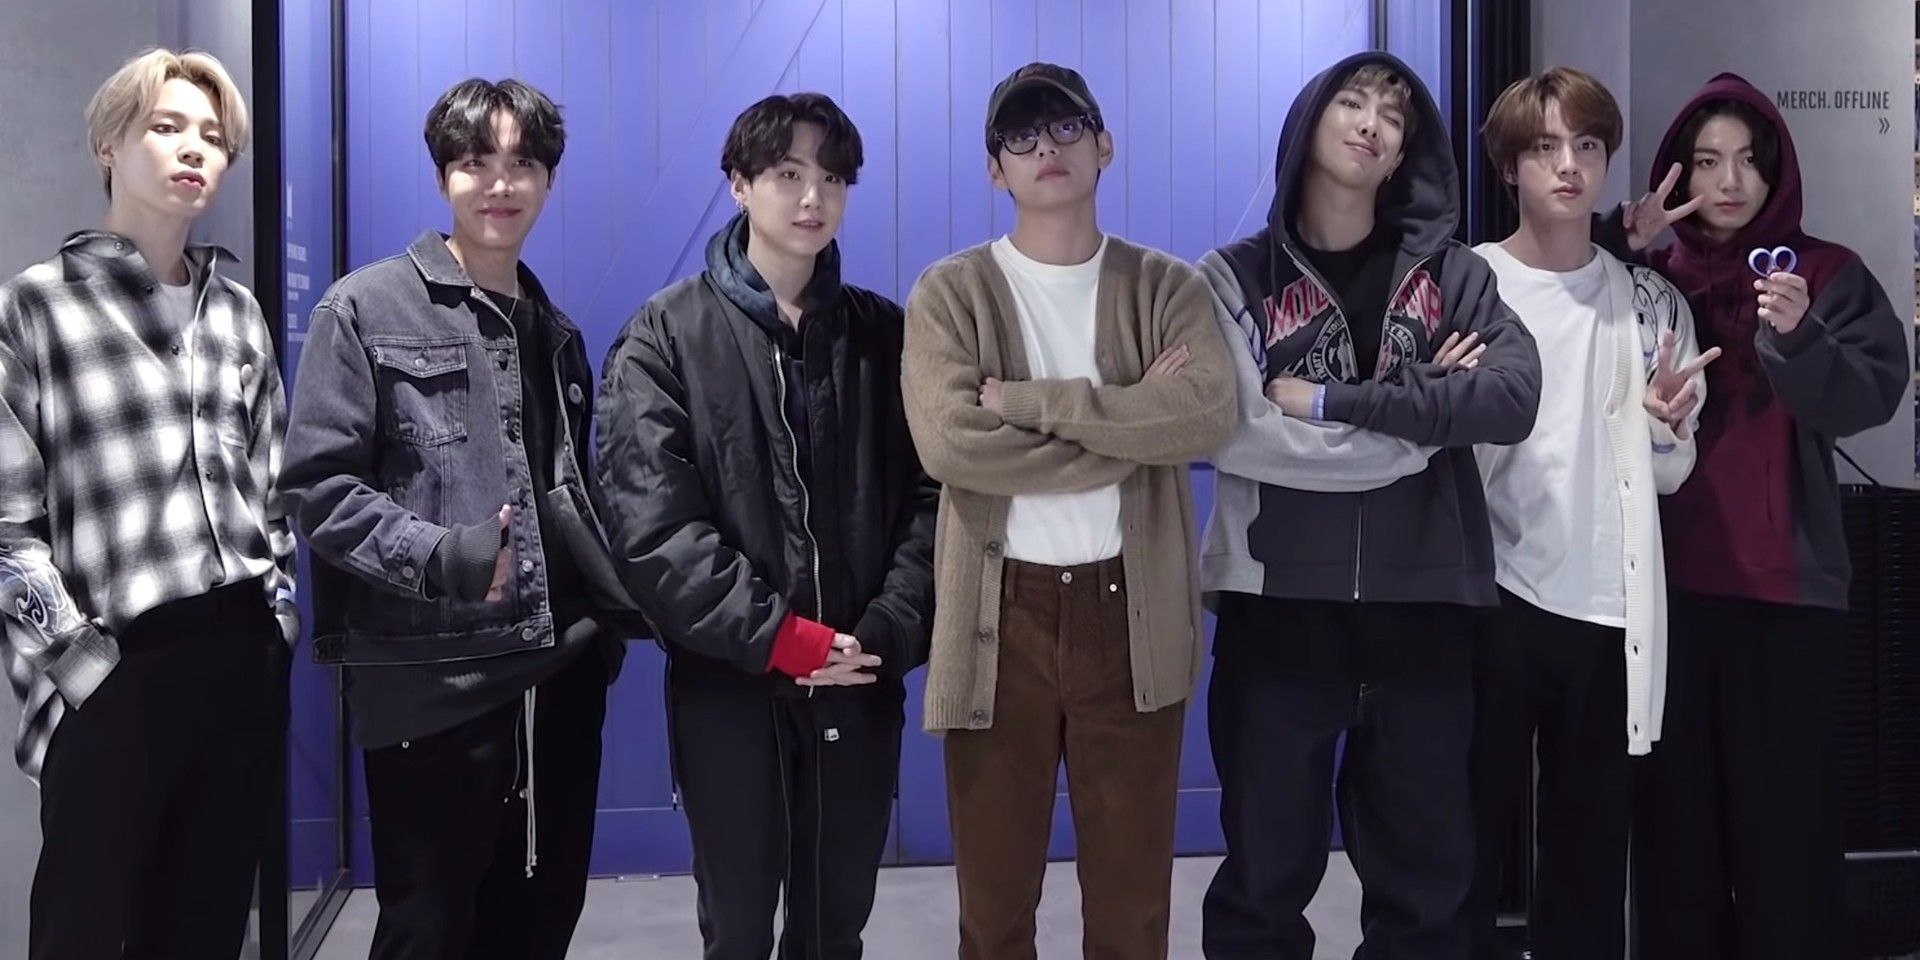 BTS 'MAP OF THE SOUL' pop-up to open in Taipei